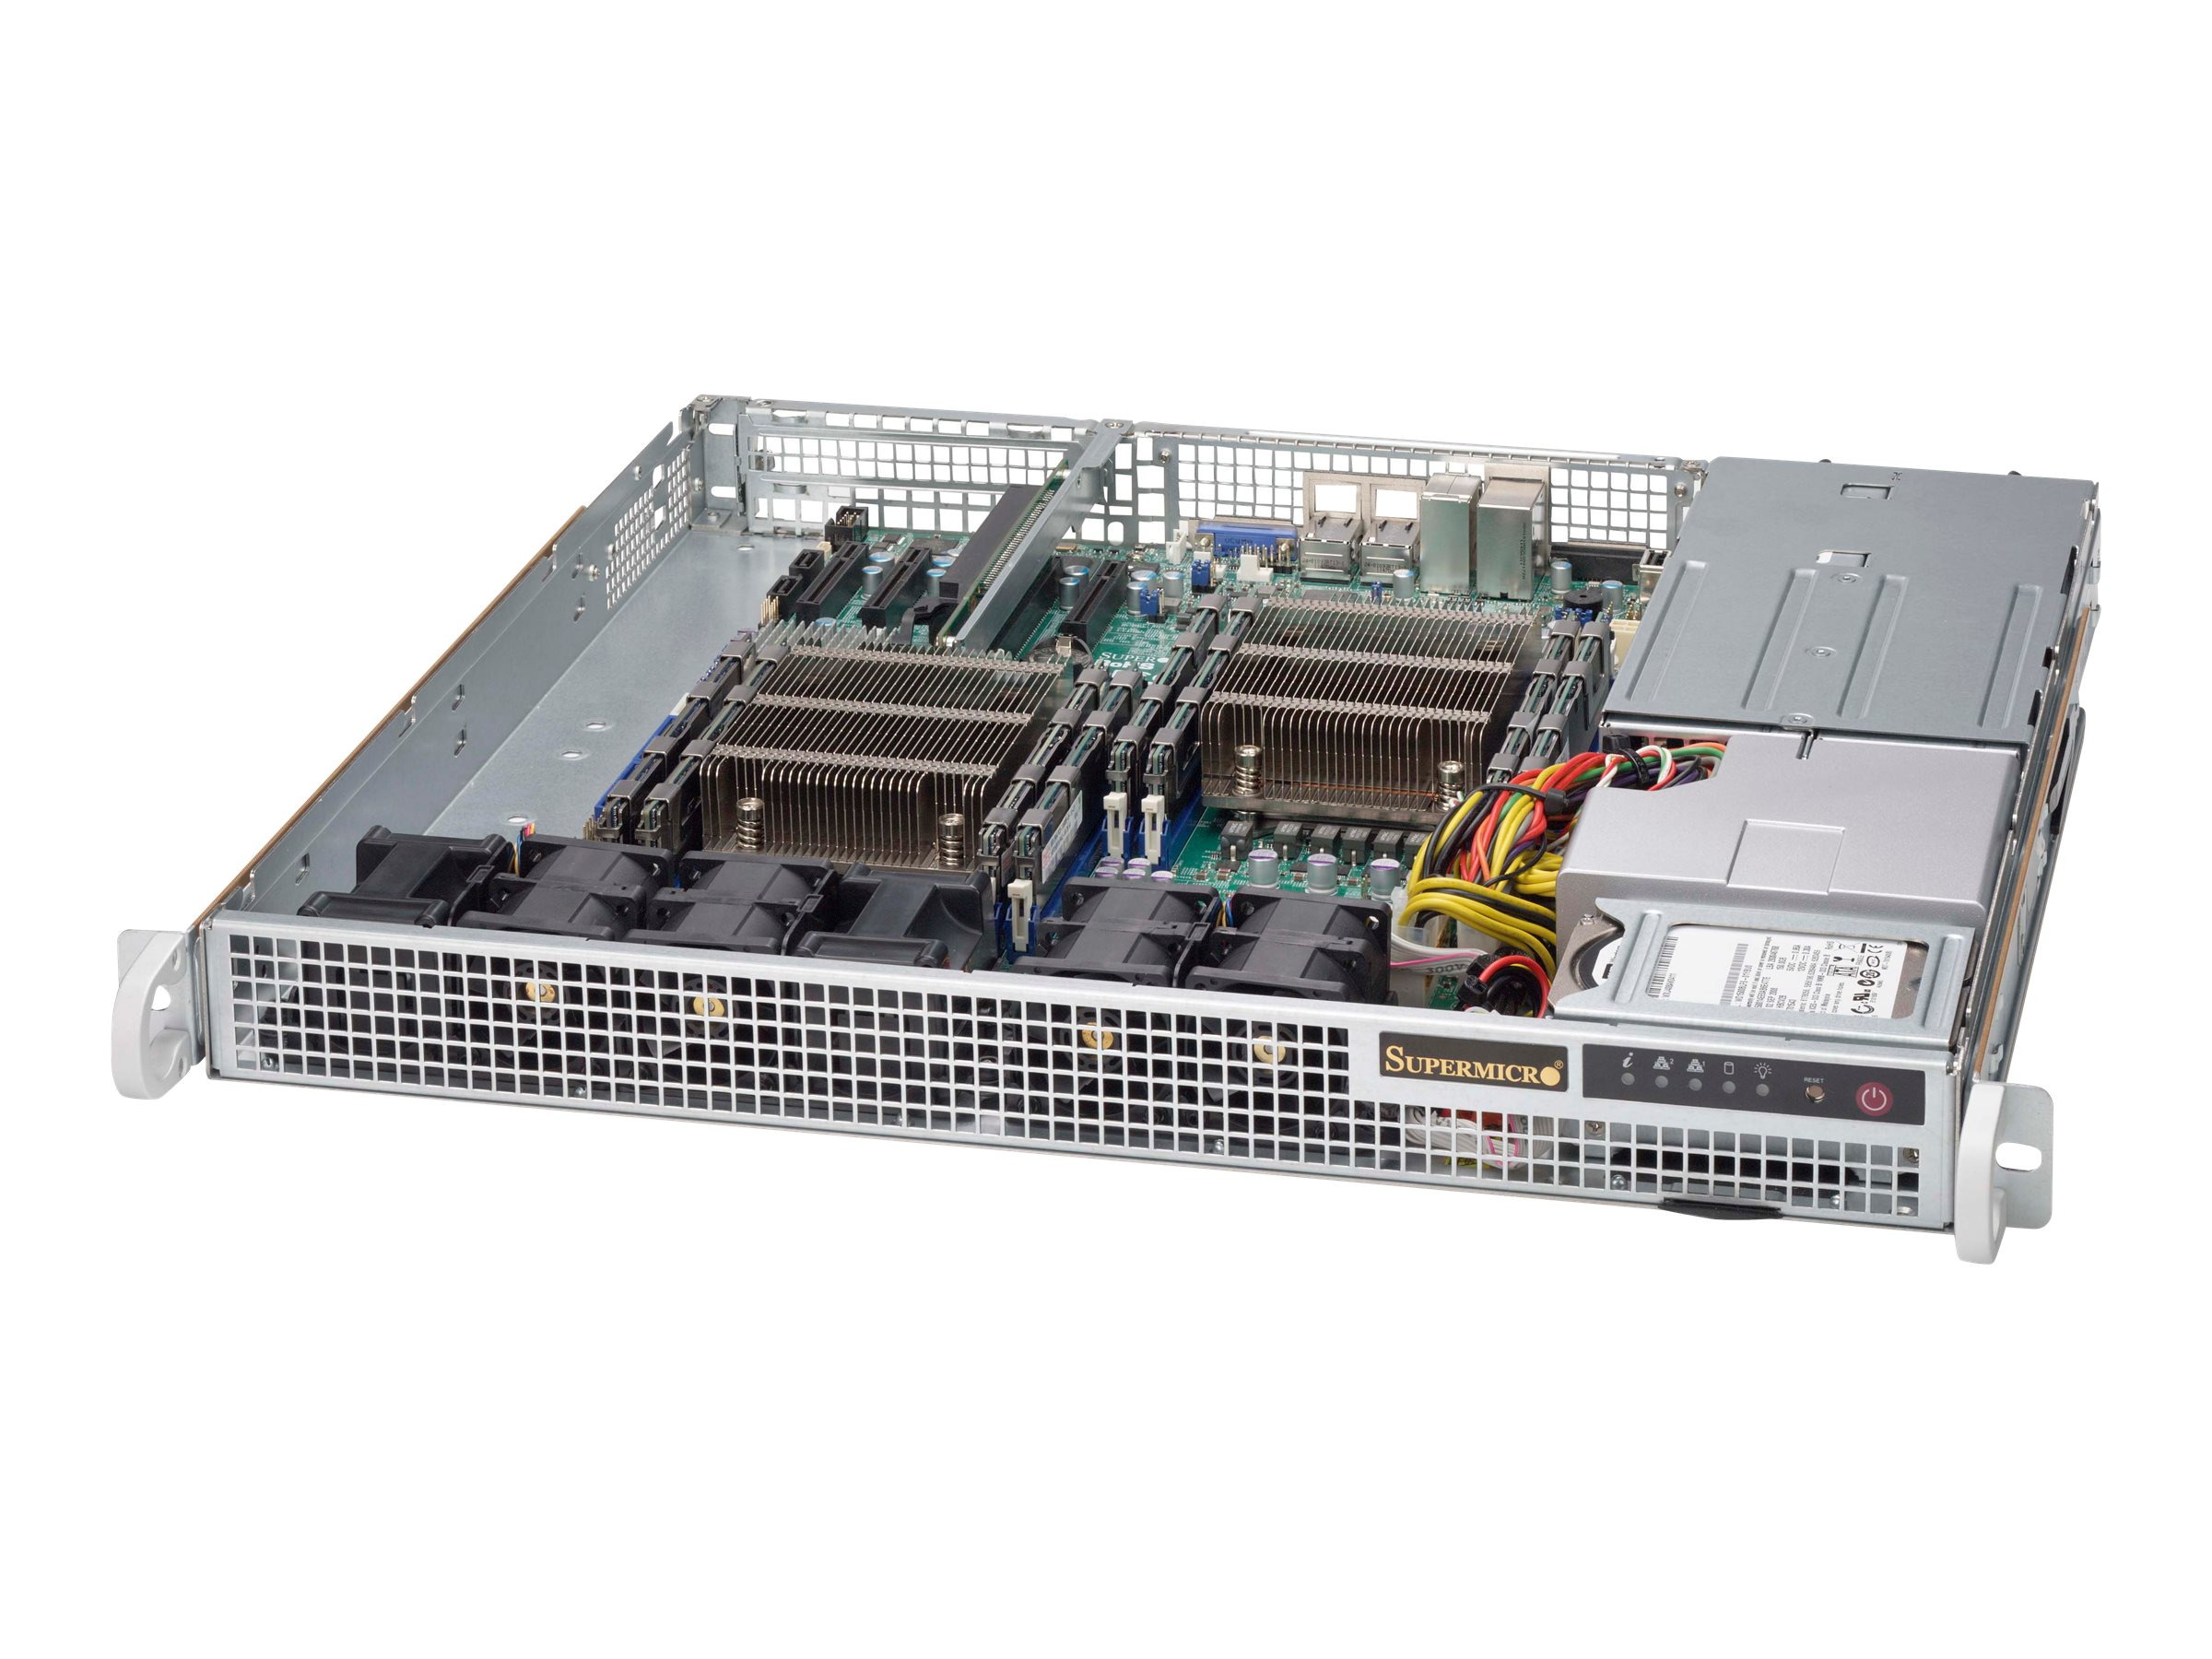 Supermicro Chassis, SuperChassis 514-R400C 1U RM E-ATX (2x)Intel AMD Family 2x2.5 Bays 1xSlot 2x400W